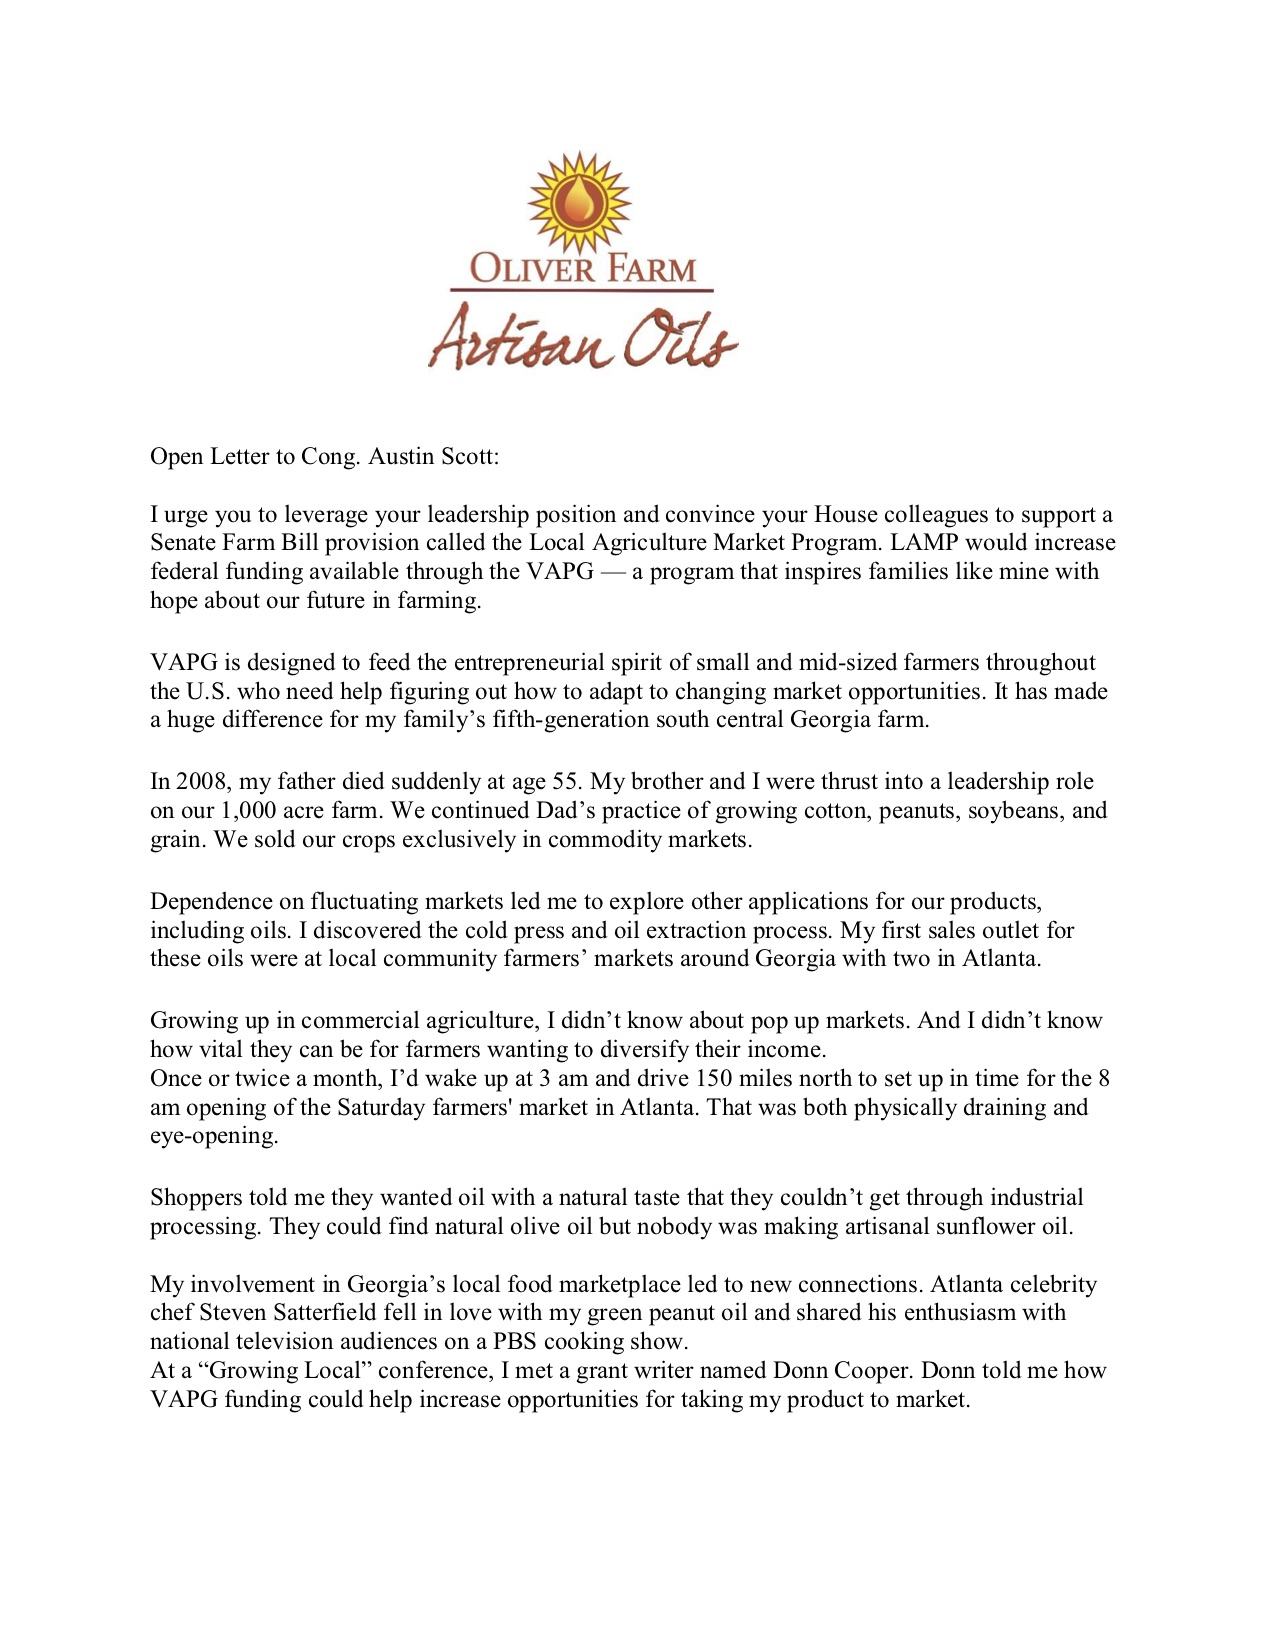 Clay Oliver's open letter to Congressman Austin Scott of the